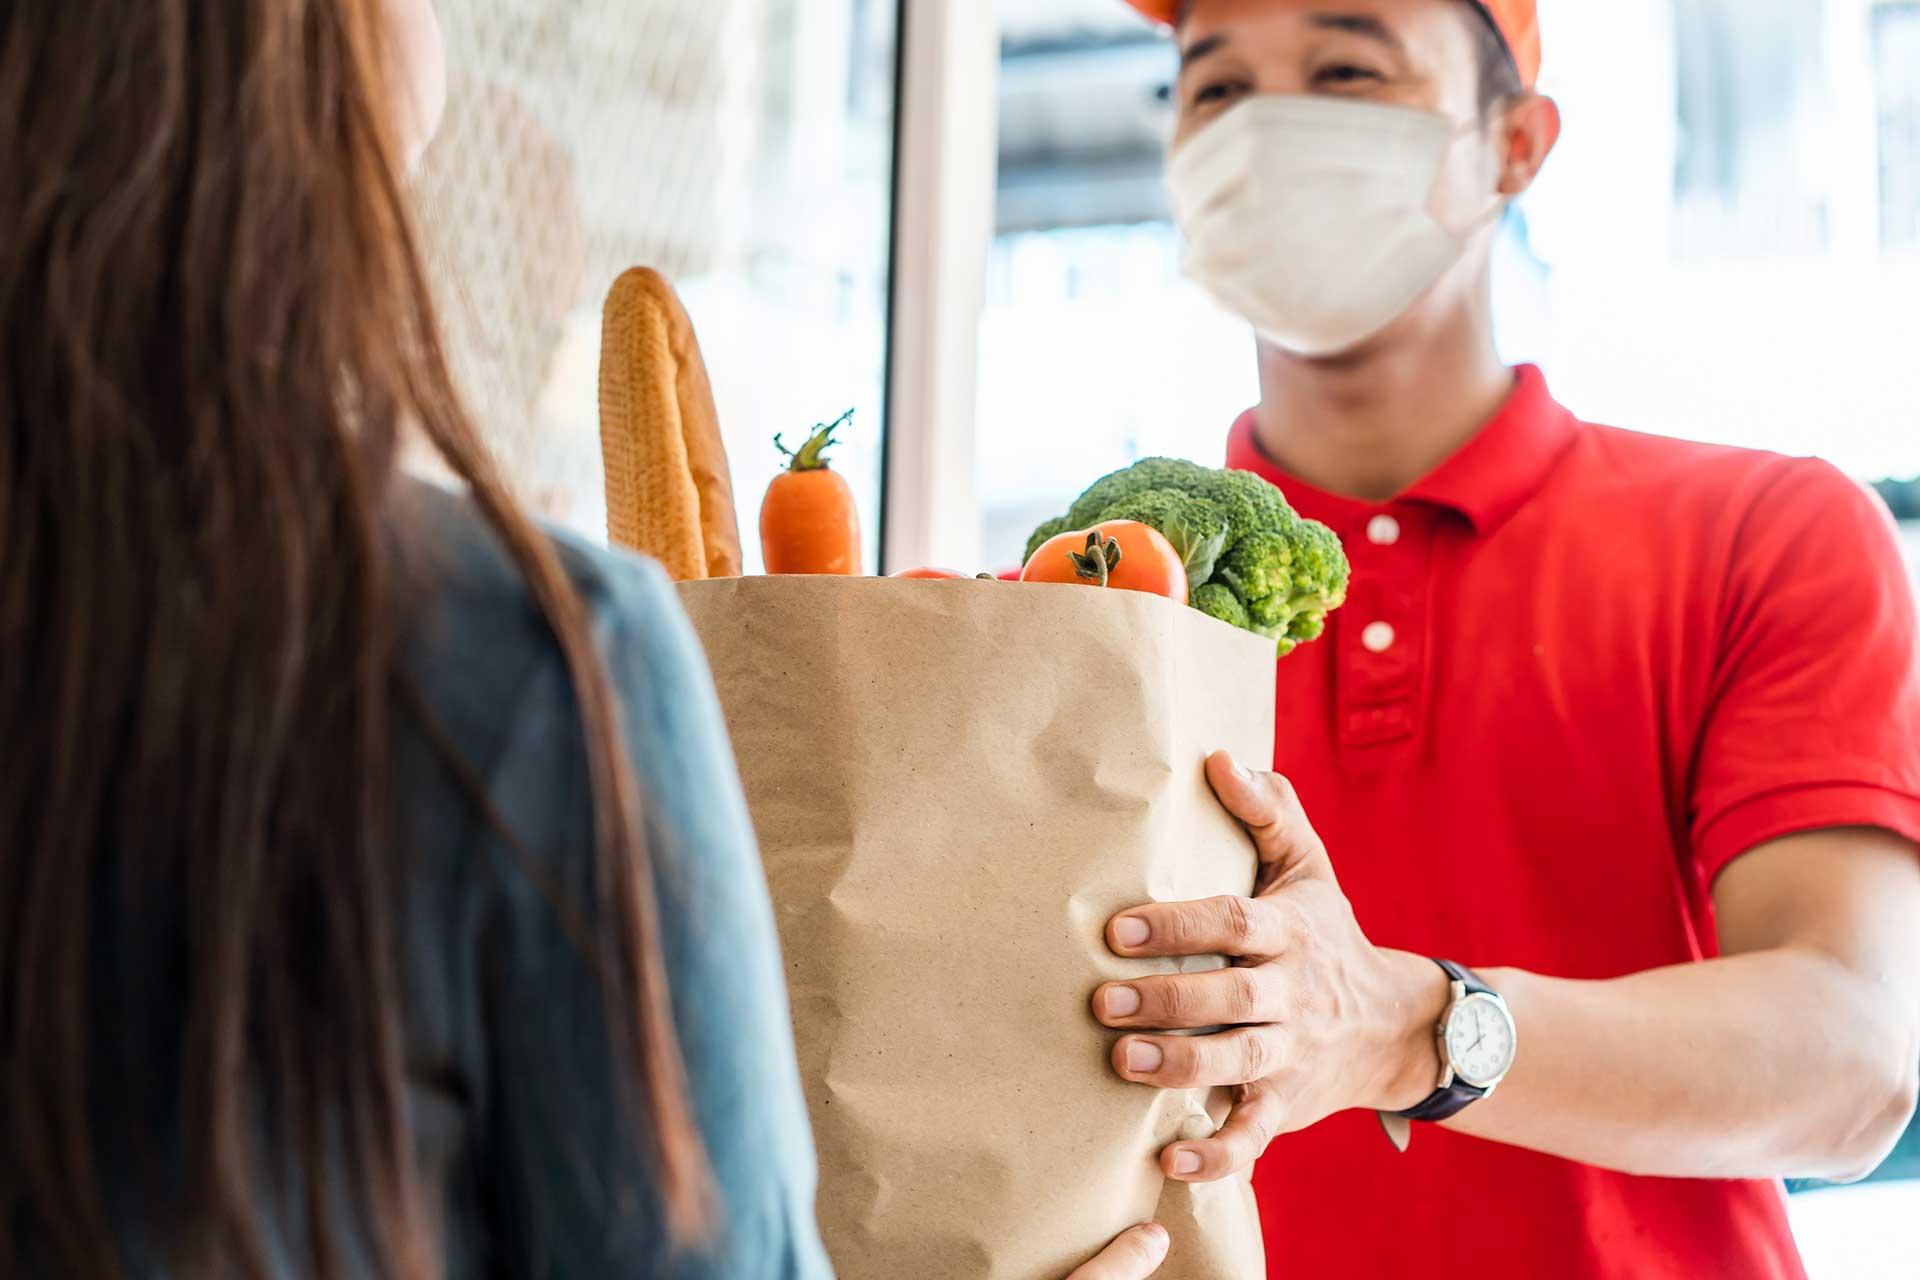 Delivery man wearing face mask in red uniform handling bag of food, fruits, vegetables to female costumer in front of the house.